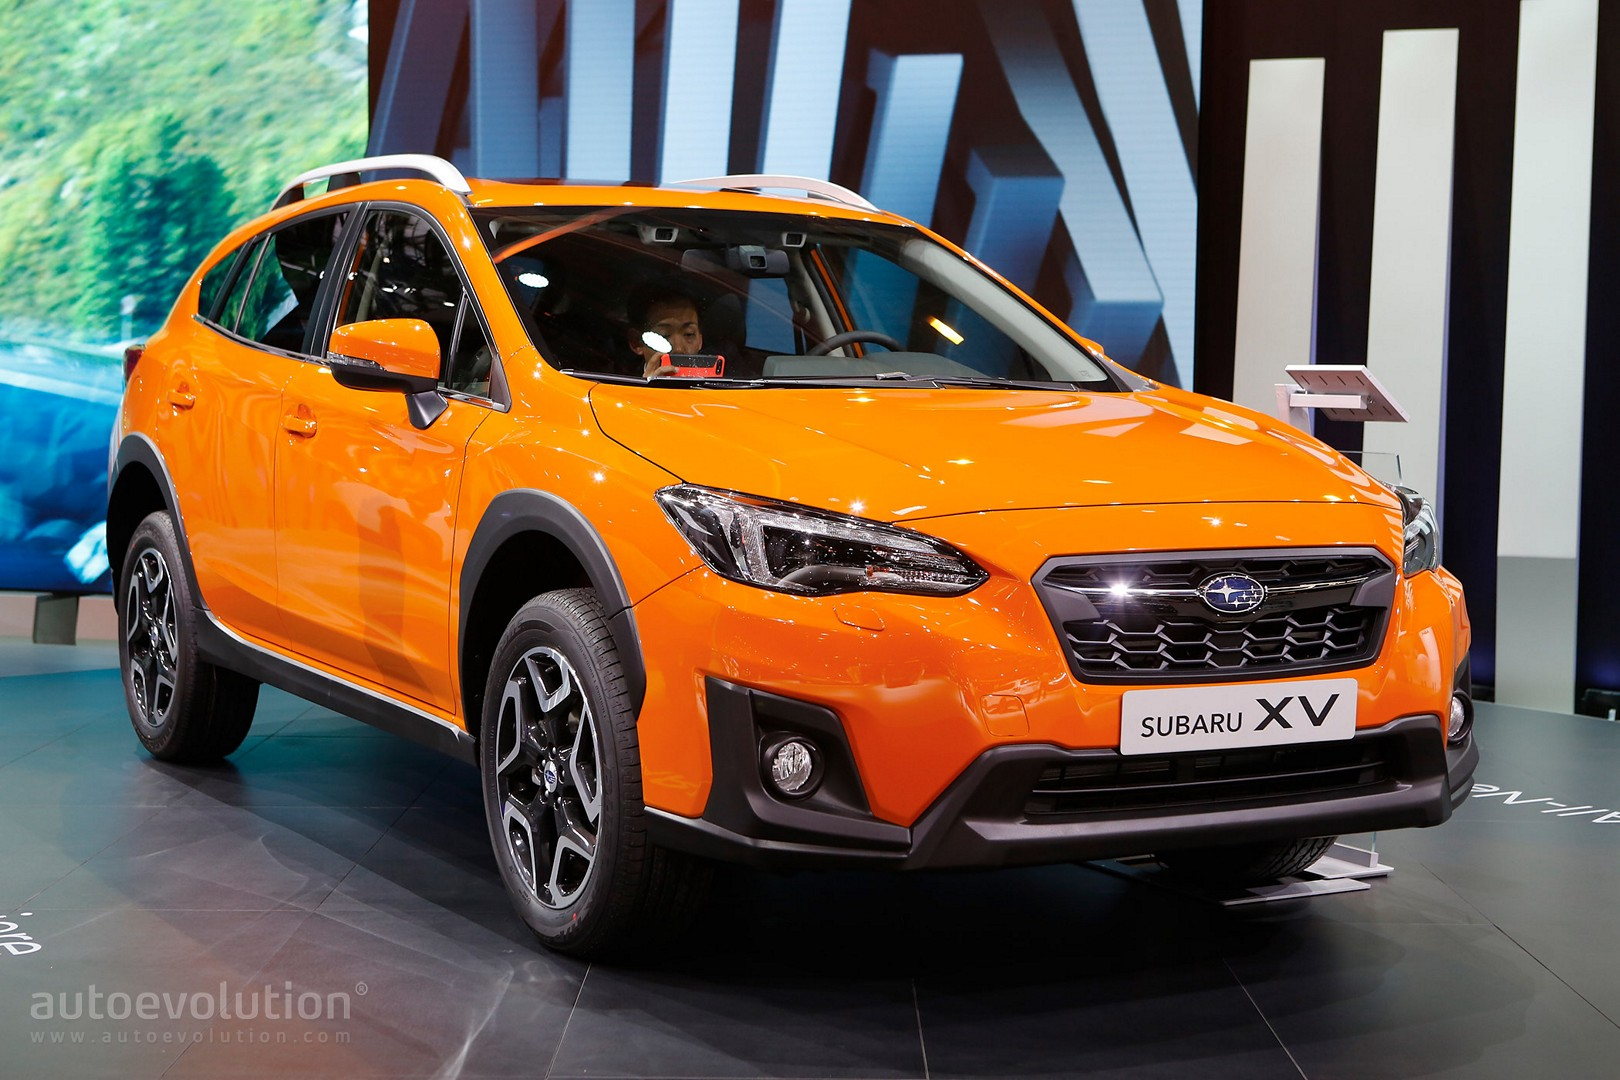 2018 subaru xv debuts in geneva as impreza 39 s rugged brother autoevolution. Black Bedroom Furniture Sets. Home Design Ideas